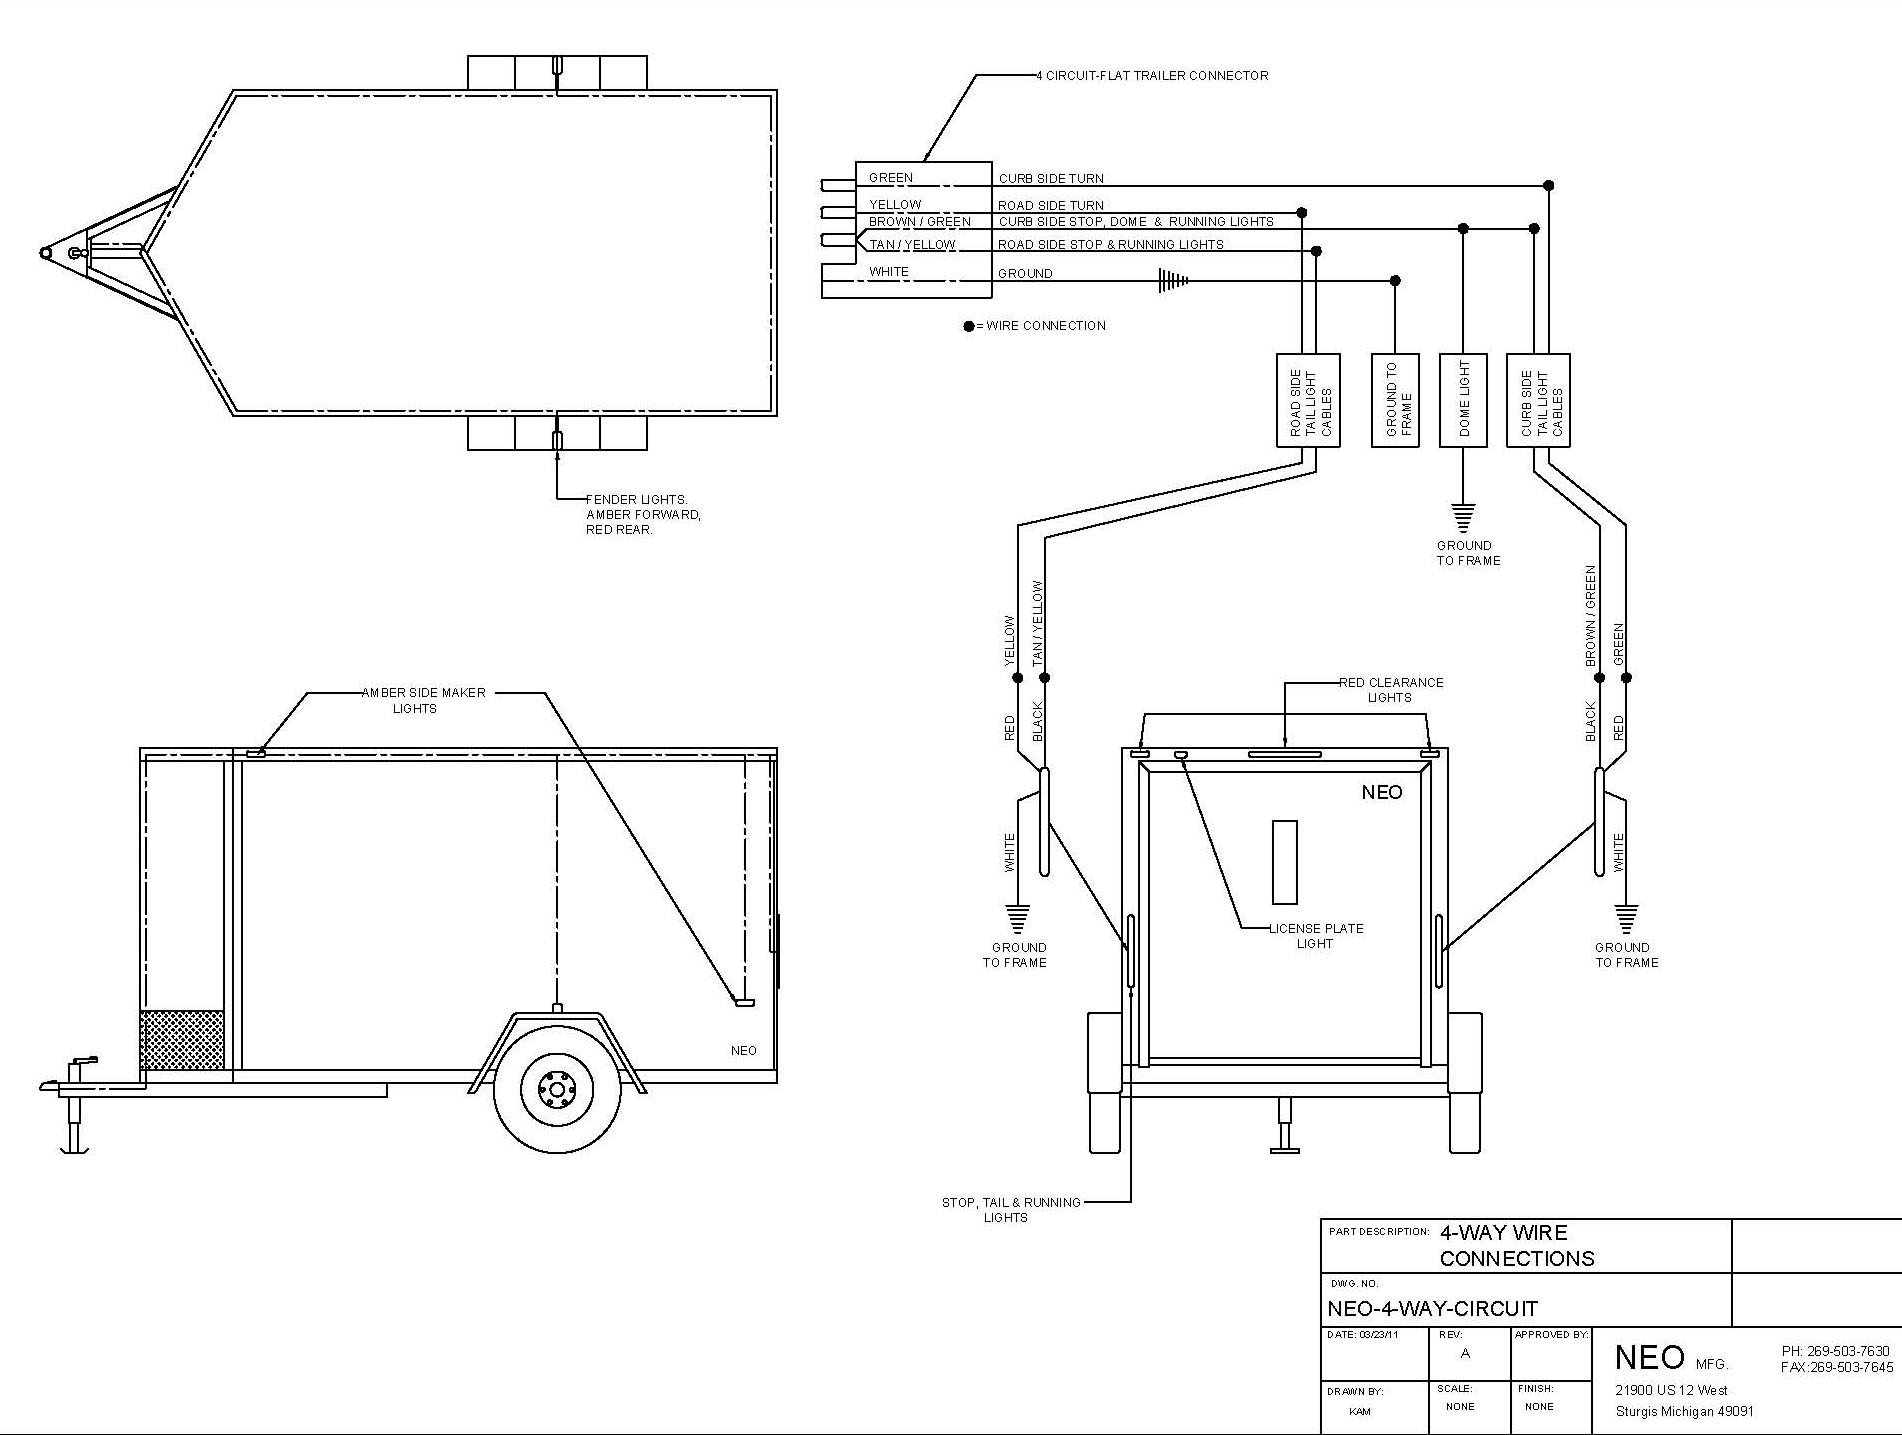 wire4 solved 1995 wells cargo wiring diagram trailer brakes? fixya haulmark enclosed trailer wiring diagram at reclaimingppi.co